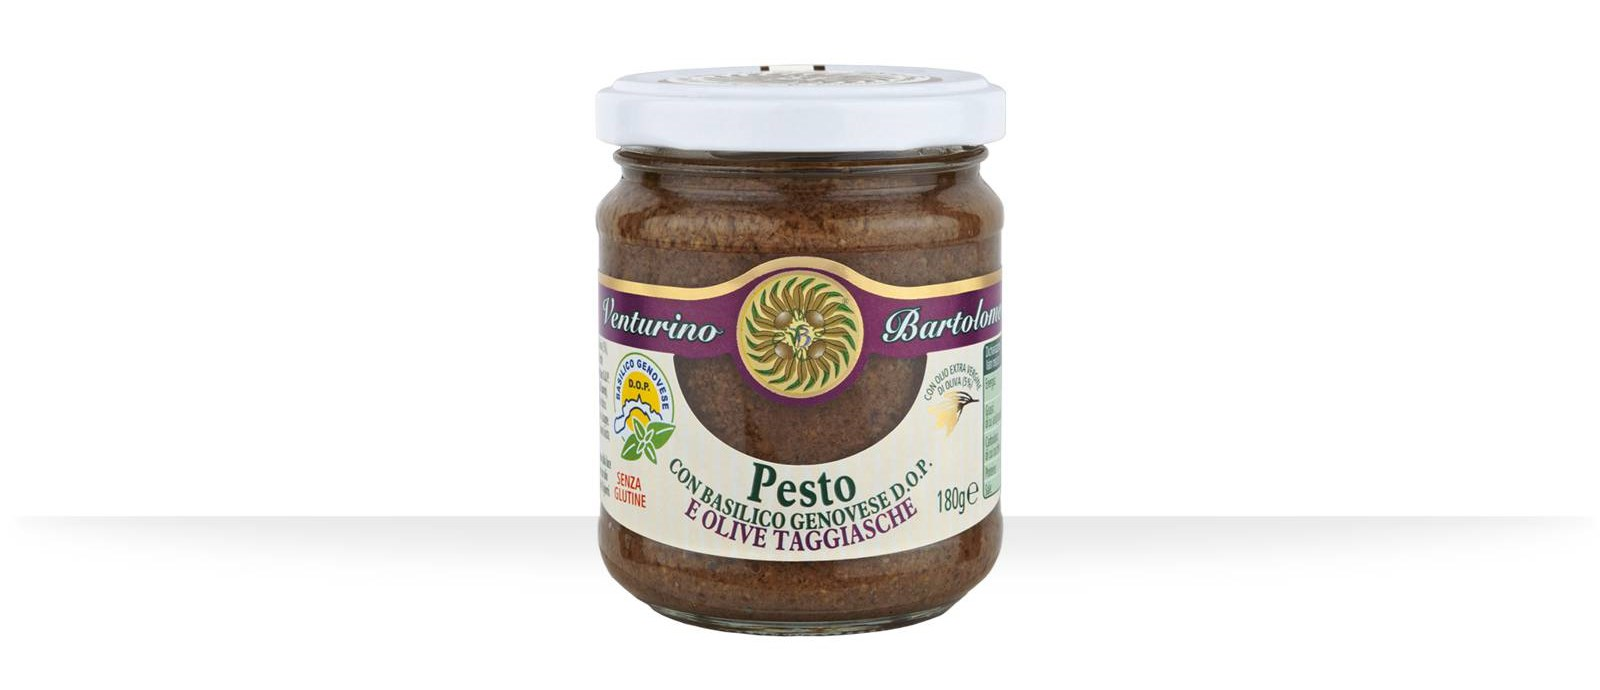 Pesto with basilico Genovese PDO and Taggiasca Olives